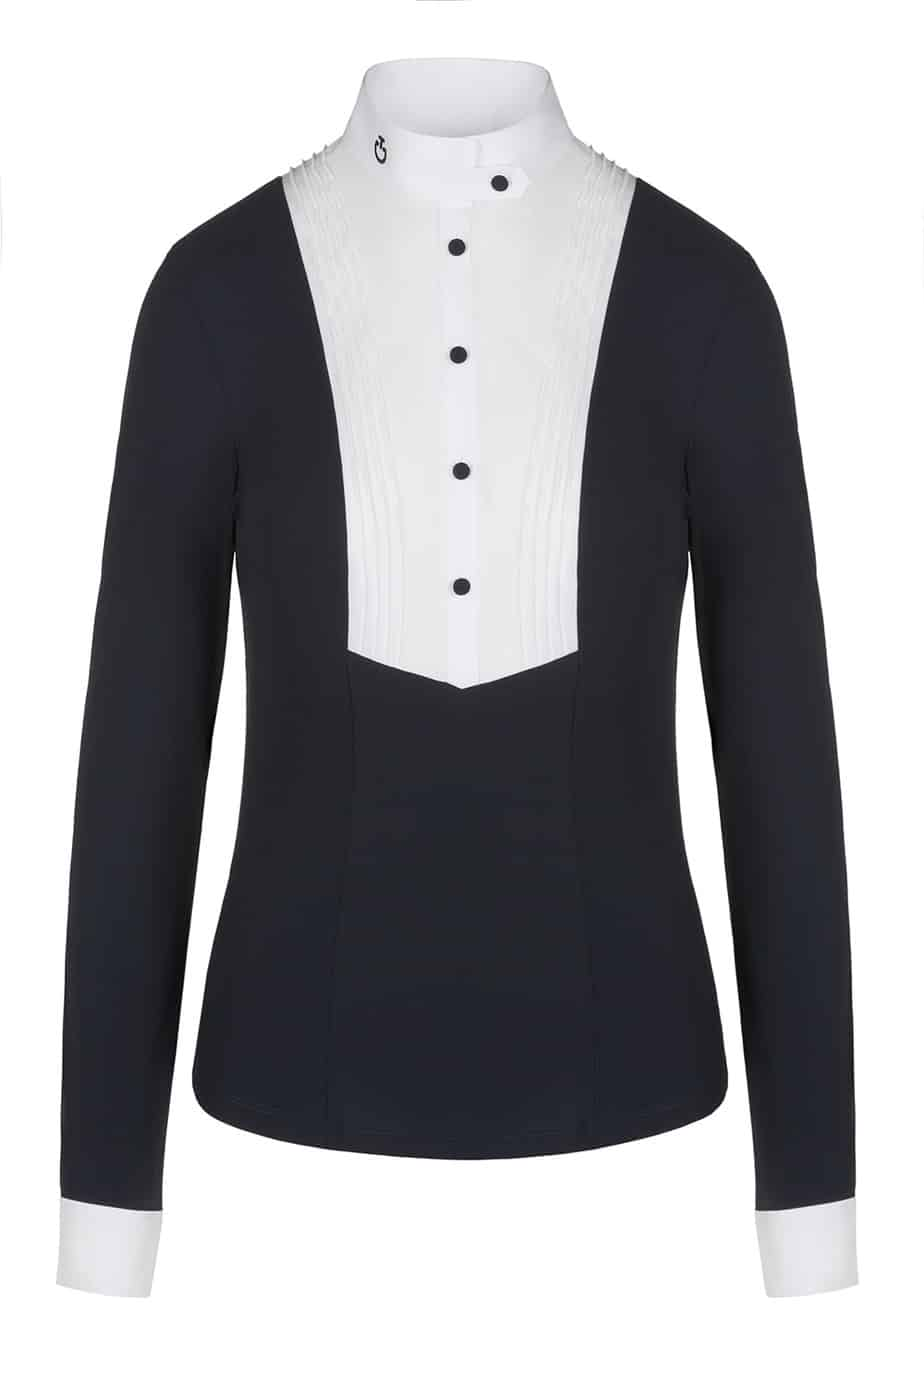 Cavalleria Toscana Women's Long Sleeve Competition Shirt with Bib- Navy